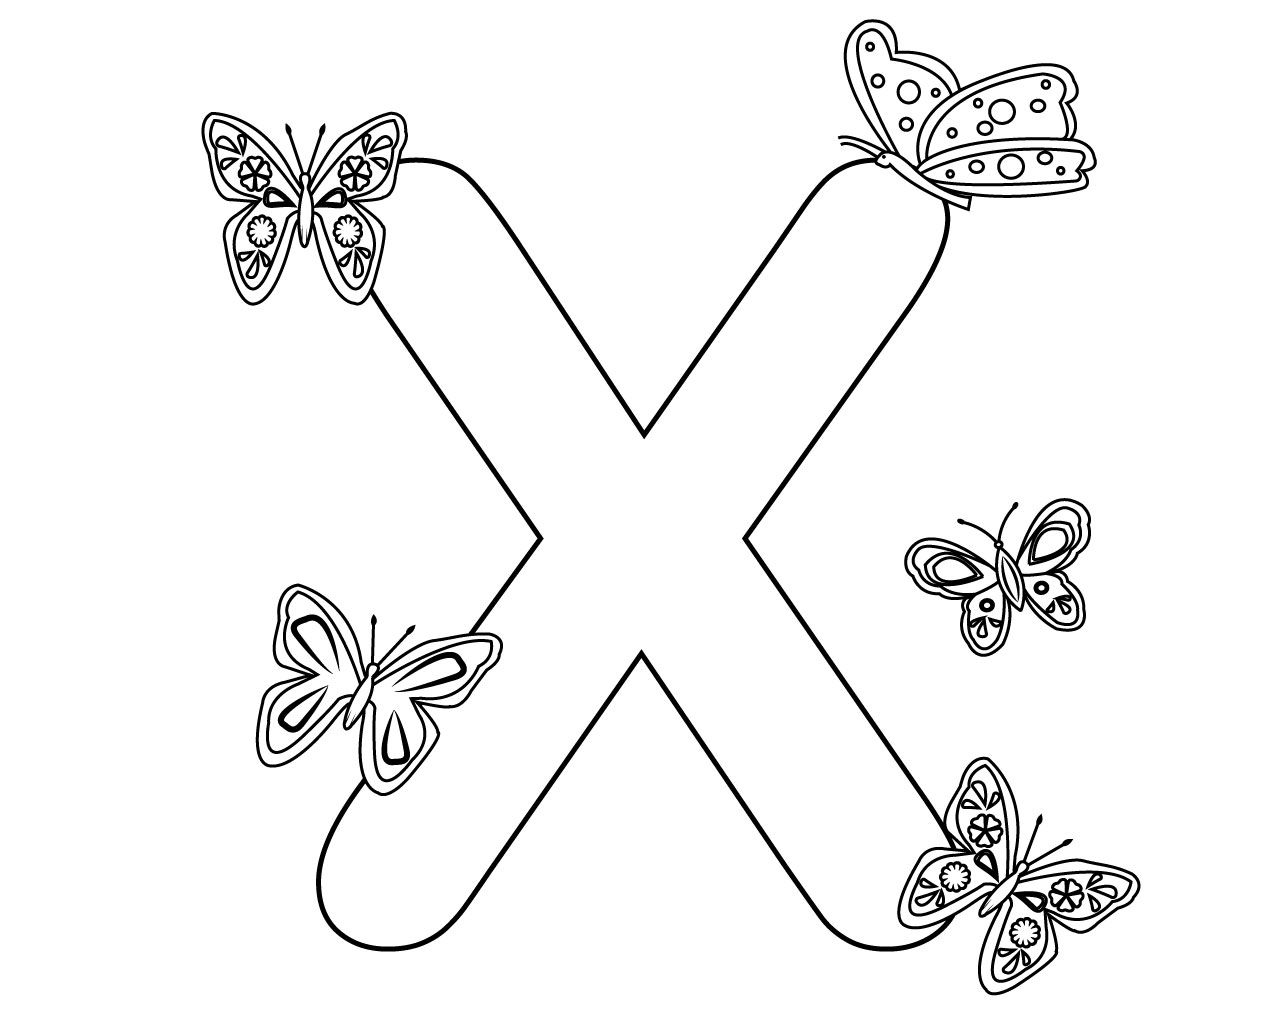 Letter X Coloring Pages For Toddlers Coloring Pages Printable Letters Free Printable Letters